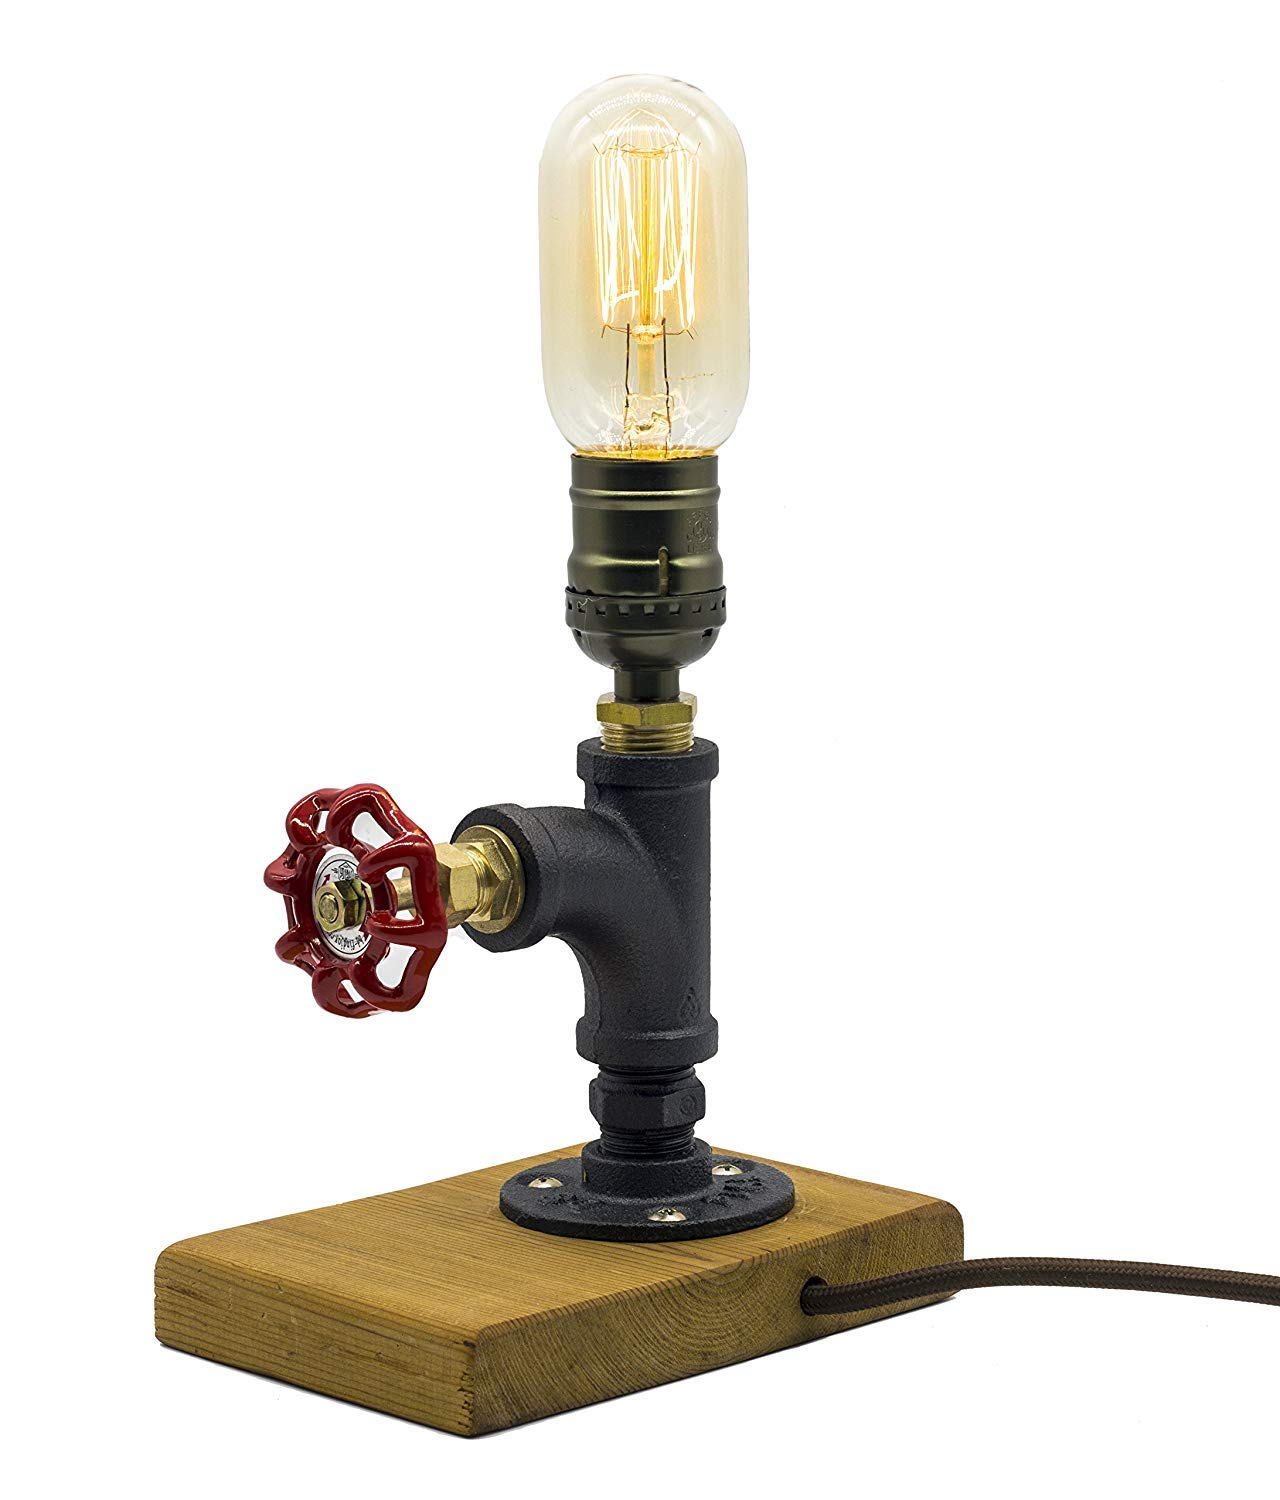 """Steam Punk Lamp with Dimmer, Dimmable Loft Style Industrial Vintage Antique Style Light, Wood Base with Iron Piping Desk Lamp, Y-Nut""""The Professor"""" Retro Desk Lamp LL-013"""